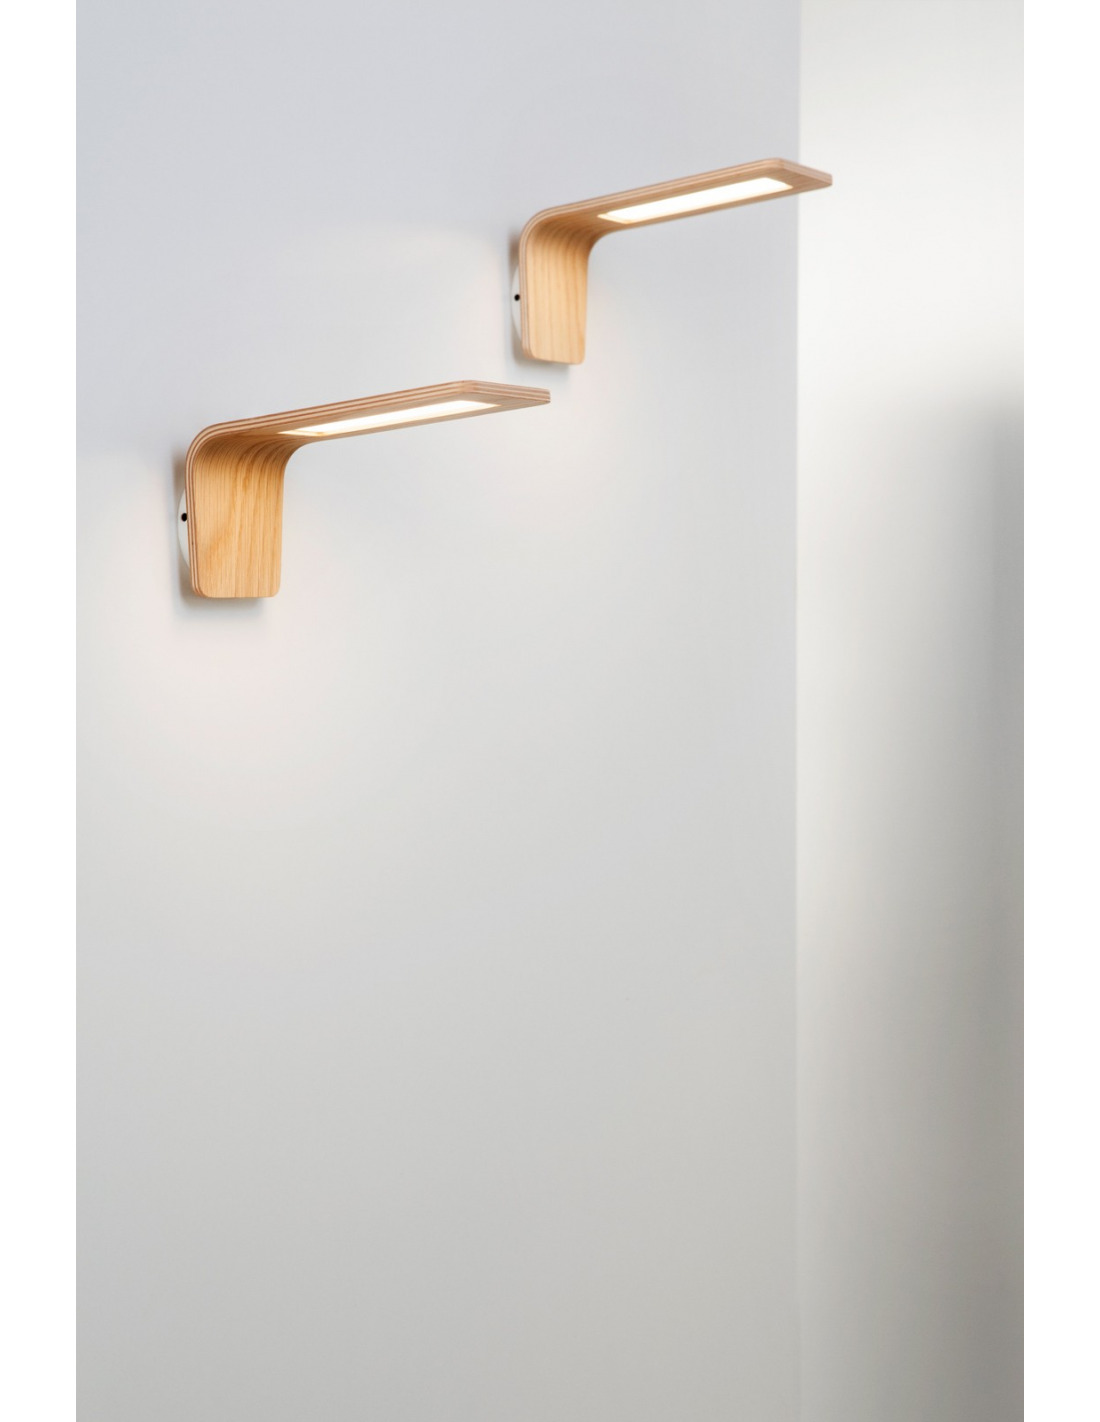 Applique Murale Bois Design : Applique murale en bois Led Butterfly 1 au design scandinave et